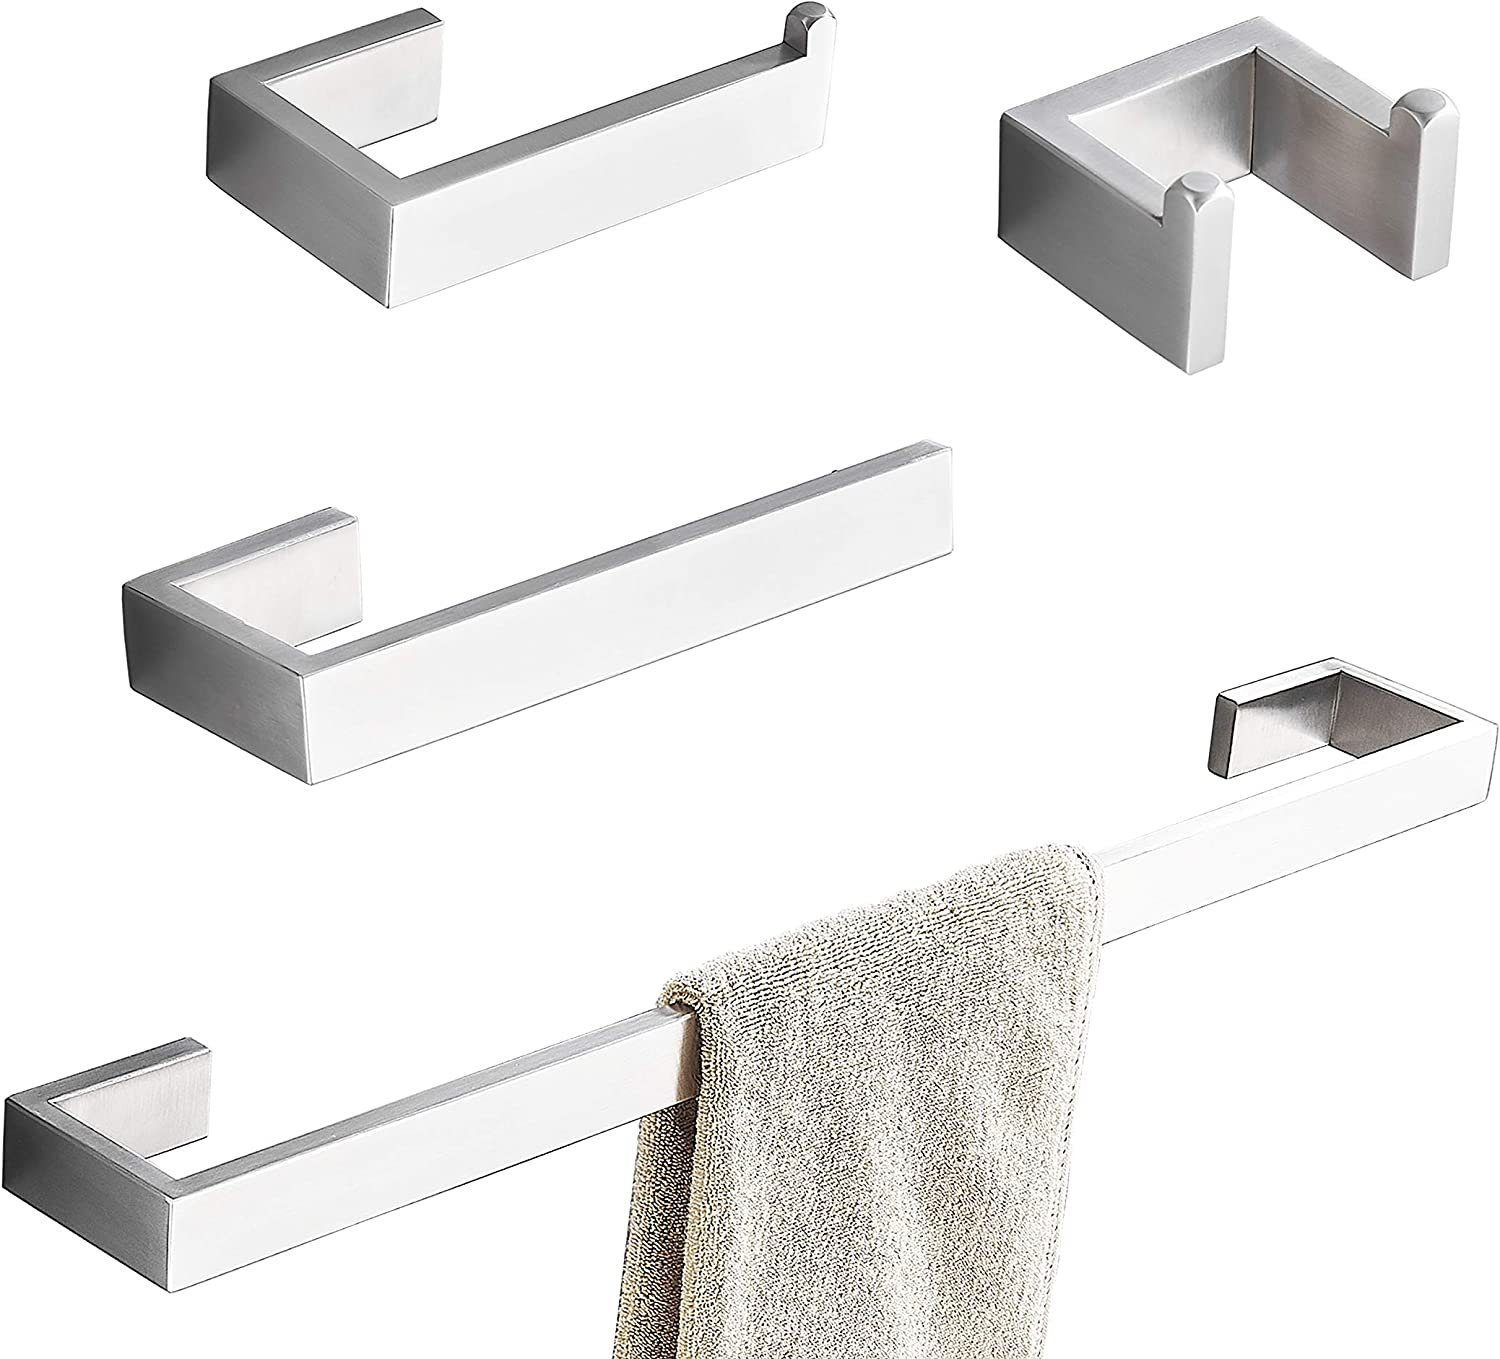 Towel Bar Set 4pcs Bathroom Hardware Accessory Set Brushed Nickel Sus304 Stainless Steel Bath Hardware Set Towel Rod With Toilet Paper Holder Towel Bar And Double Robe Hook Kitchen Dining